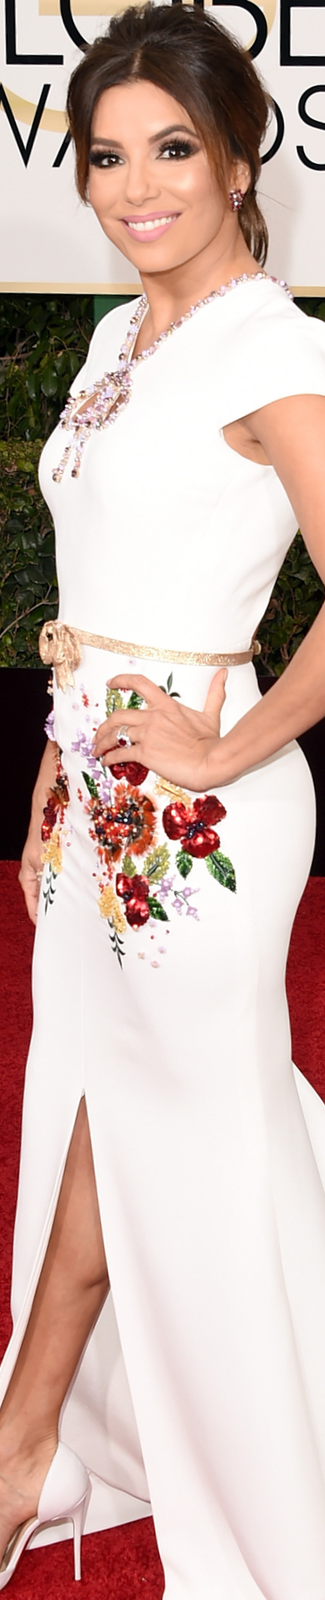 Eva Longoria 2016 Golden Globe Awards